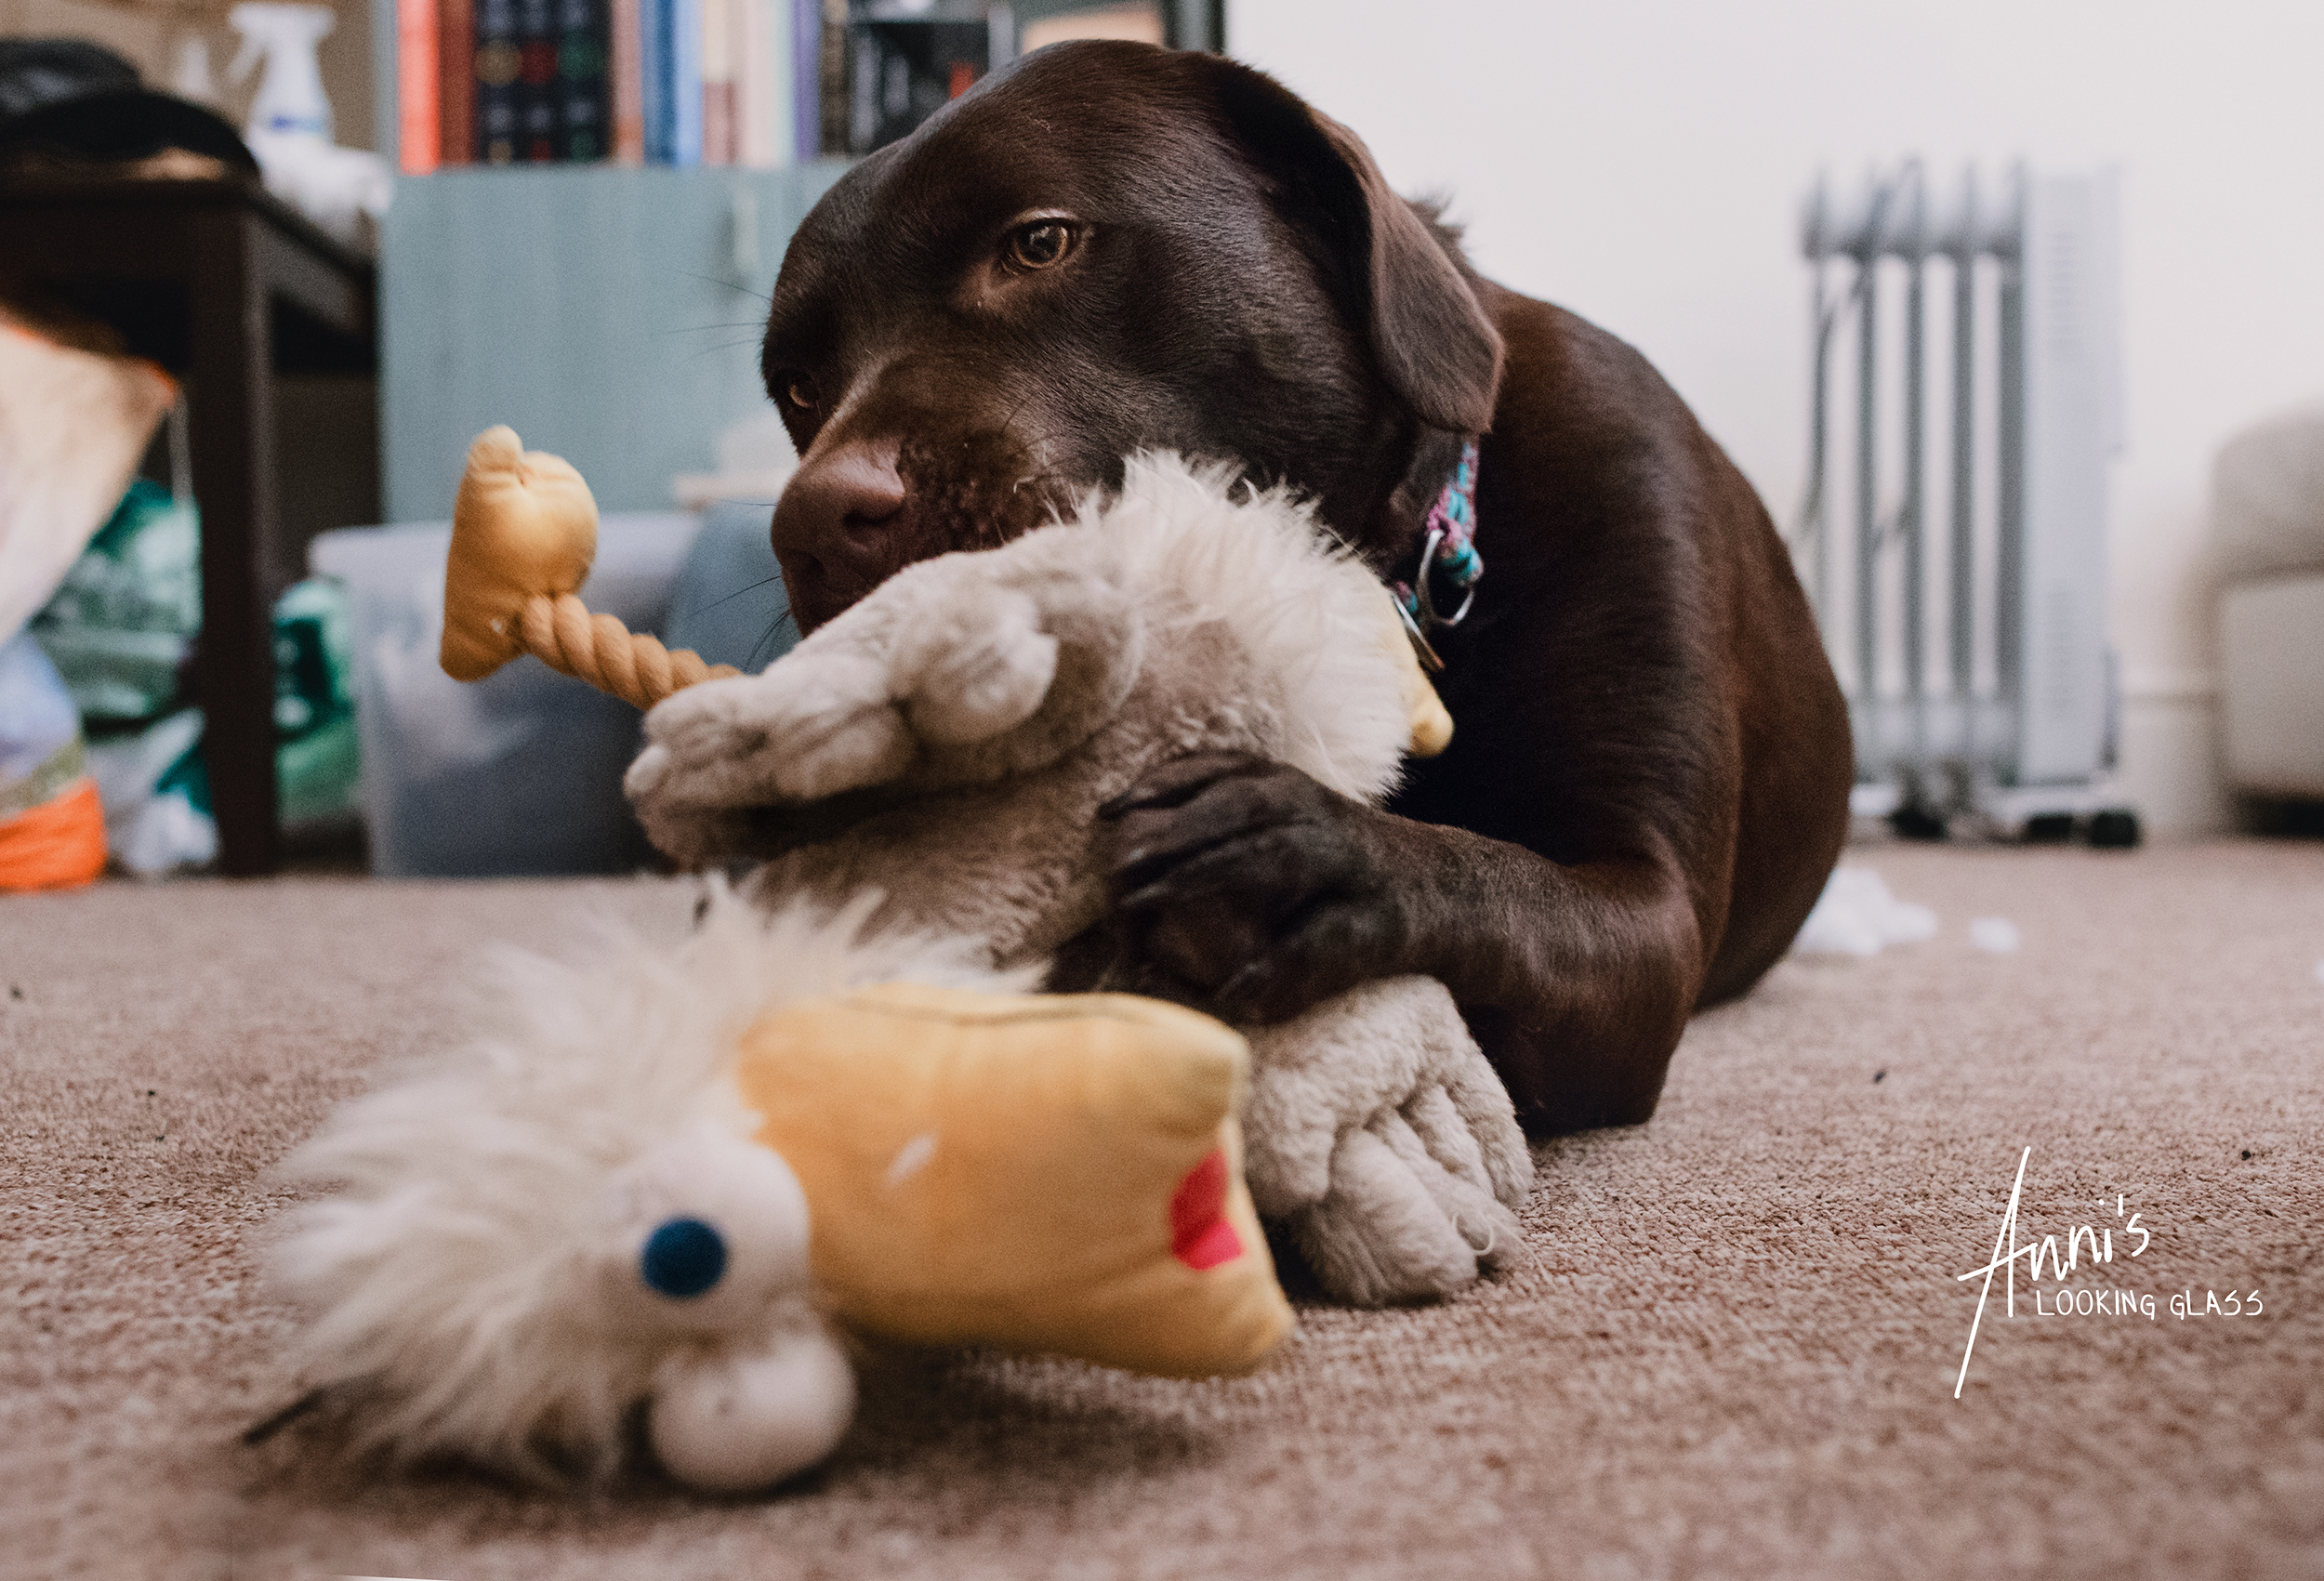 A Chocolate Labrador Retriever playing with a toy duck